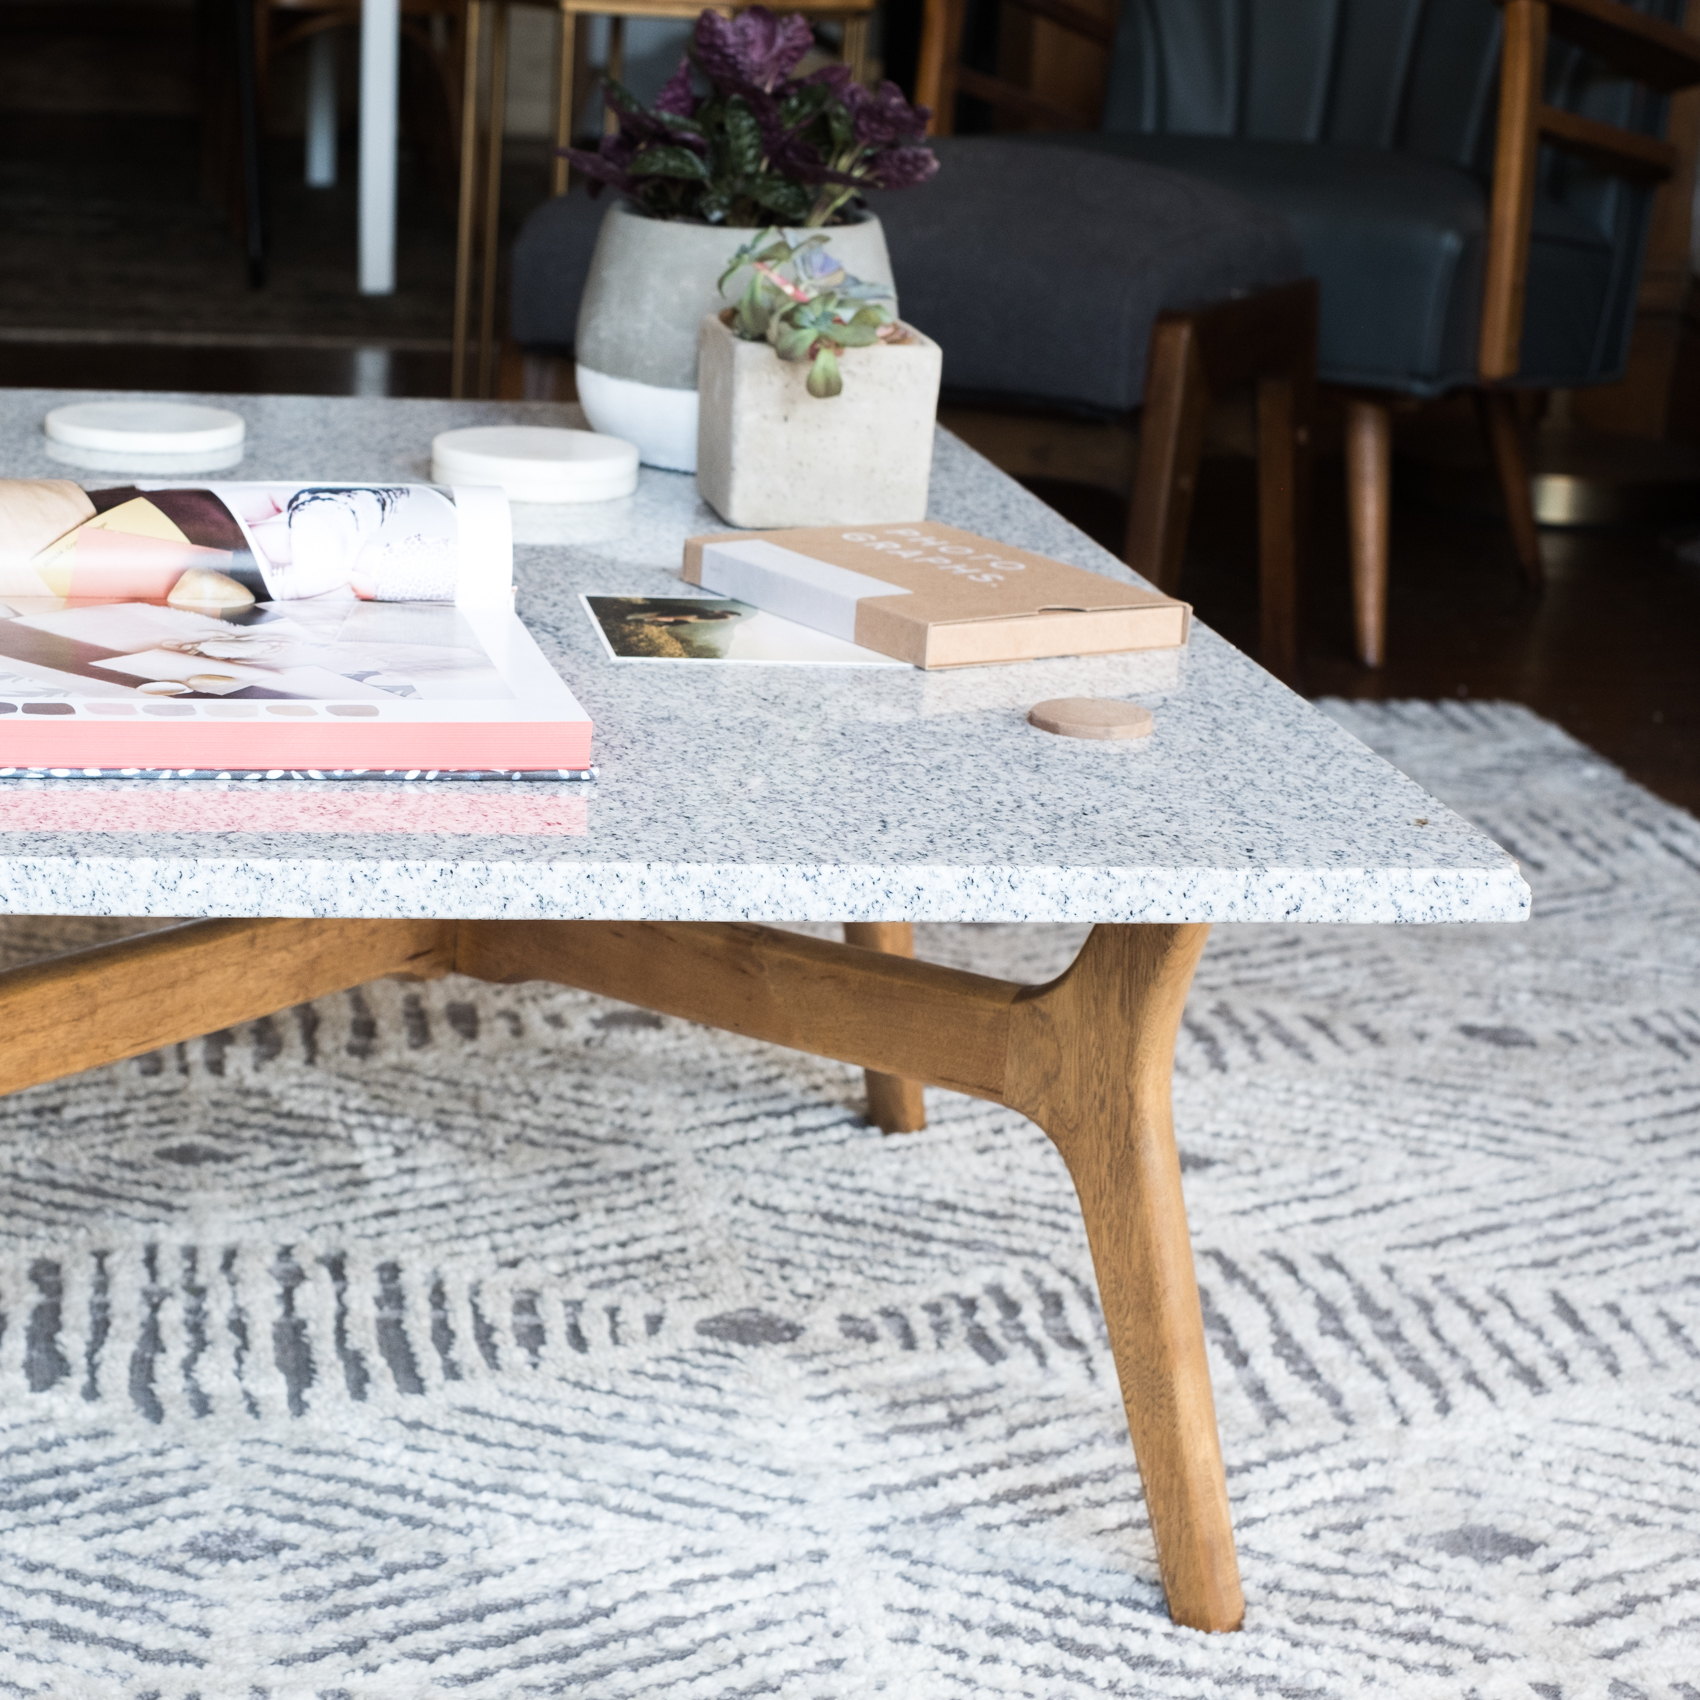 DIY Stone Top Coffee Table | Design*Sponge